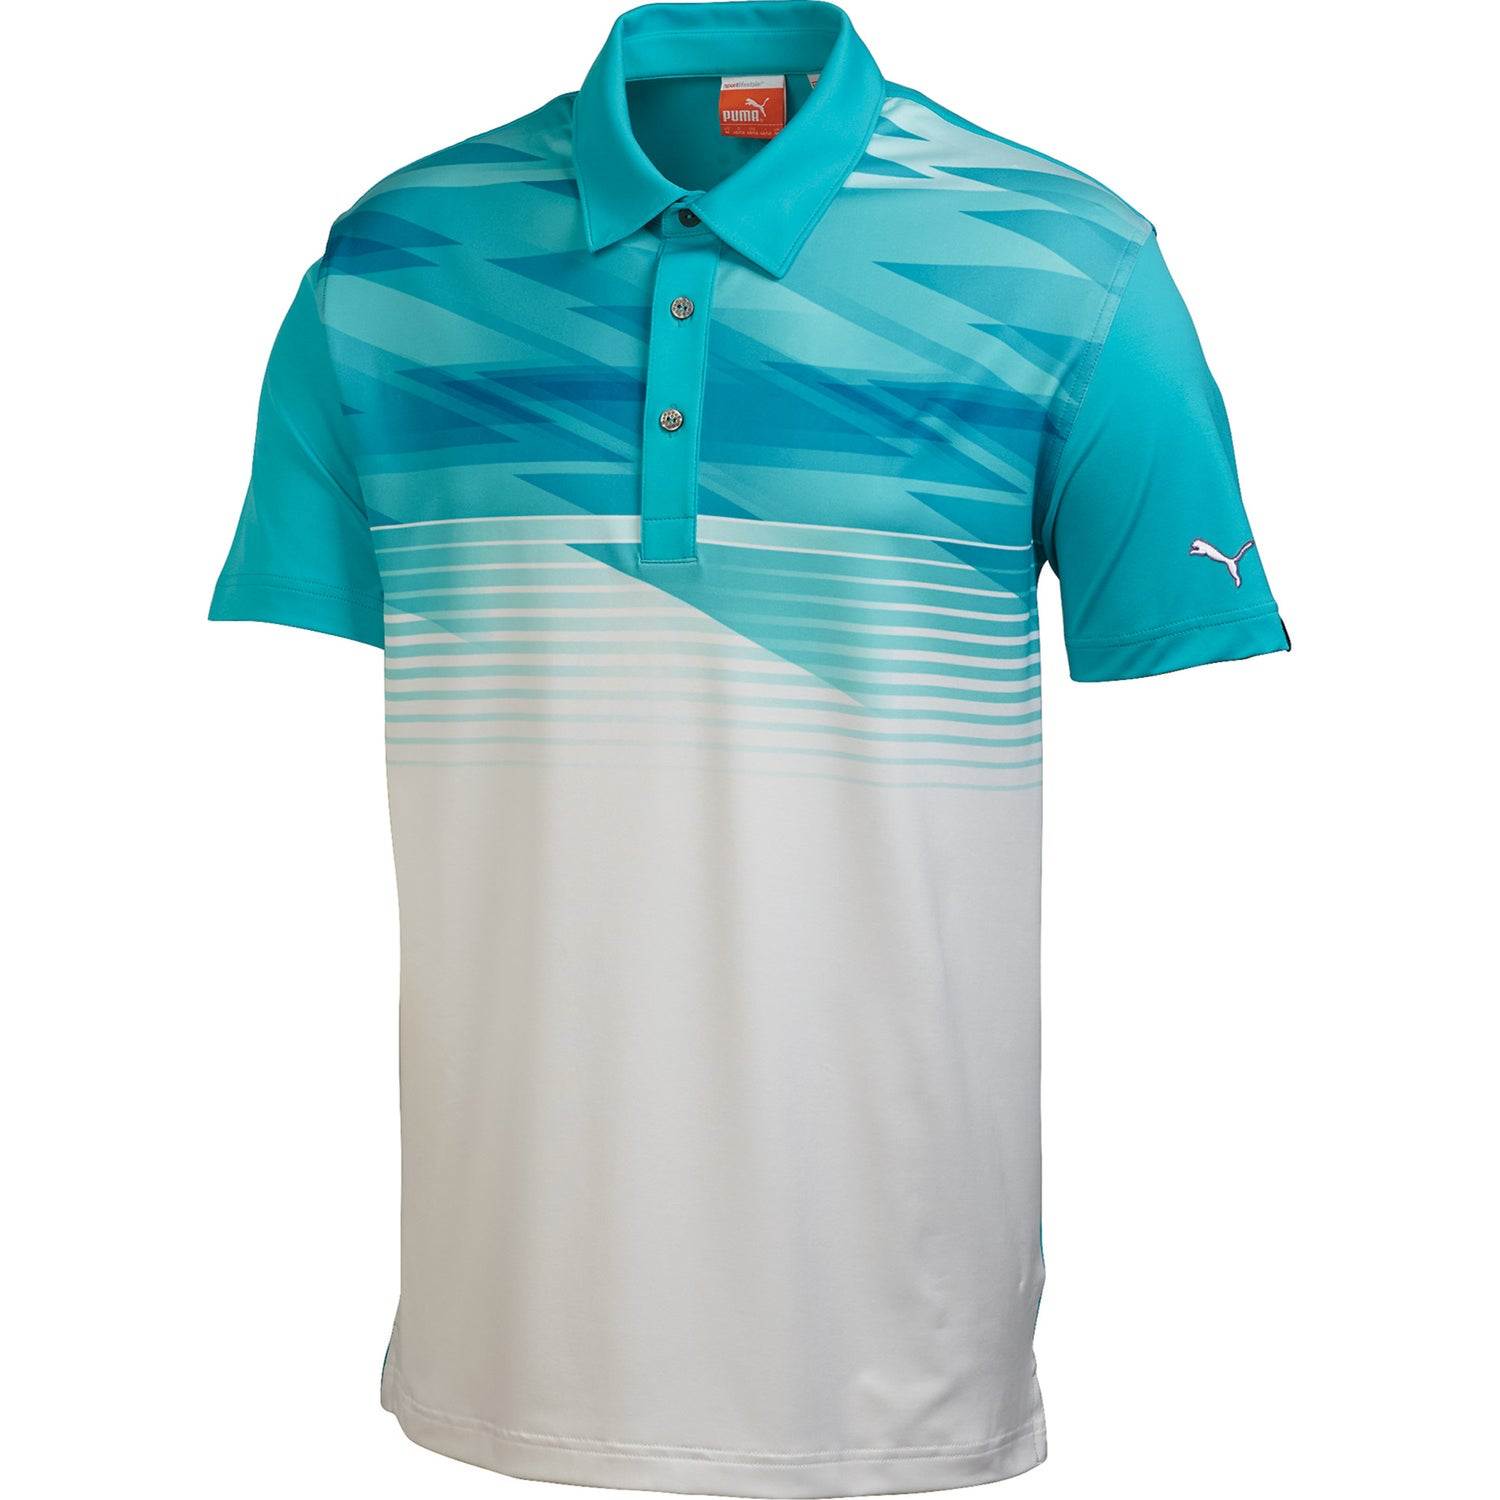 company puma golf indigital polo shirt by trimark